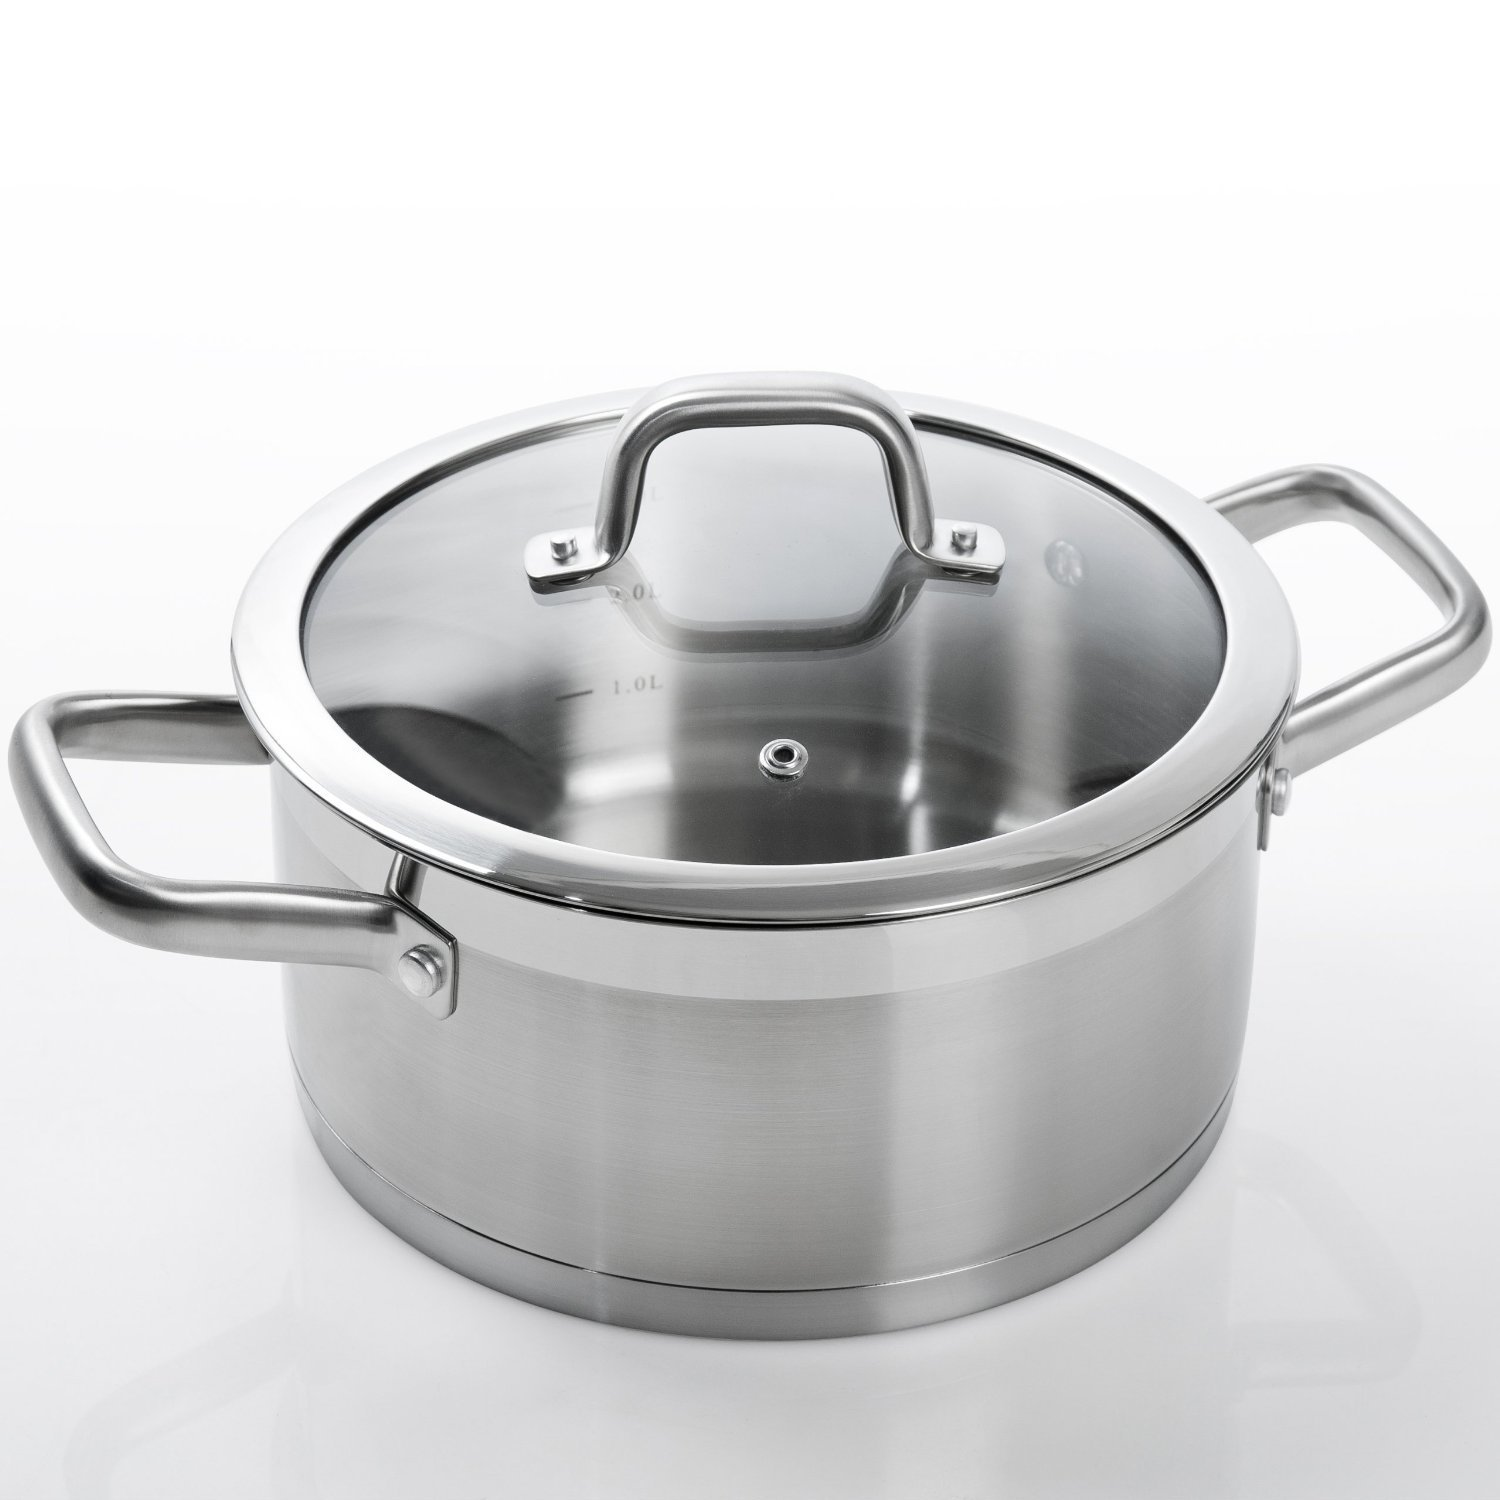 Duxtop SSIB-17 pot with lid